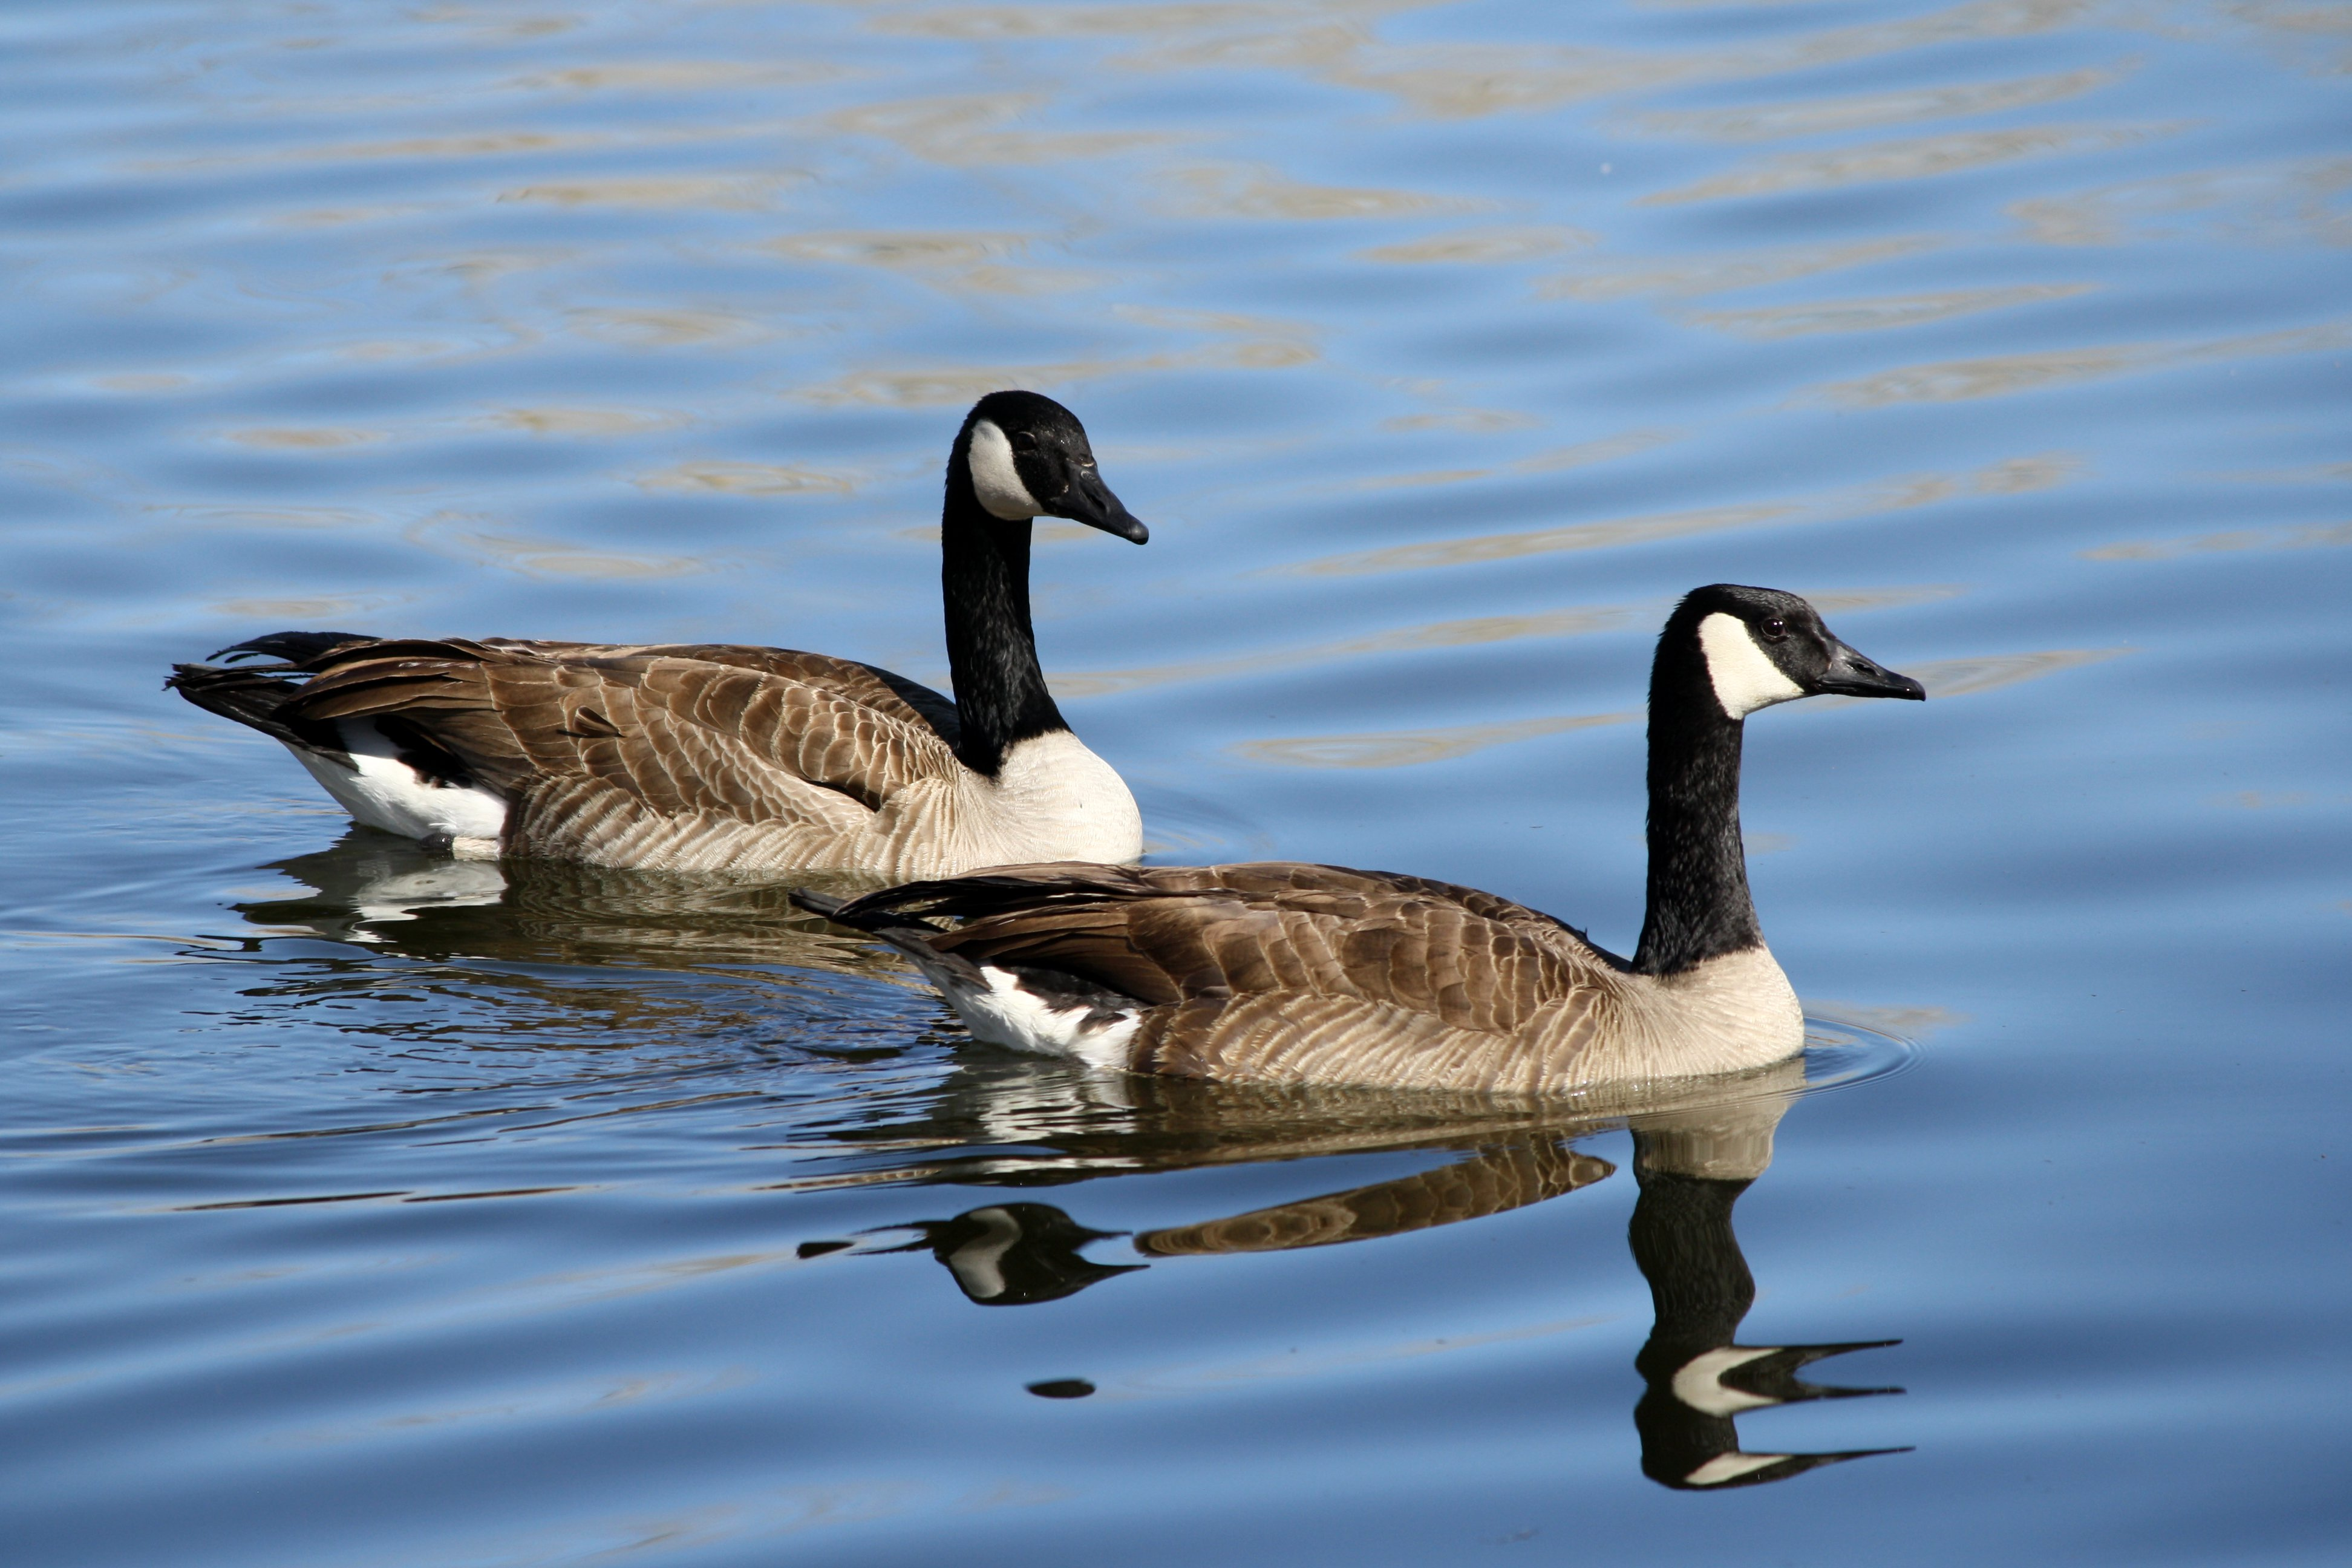 Citizens defend Cosby Lake geese to Clay Council